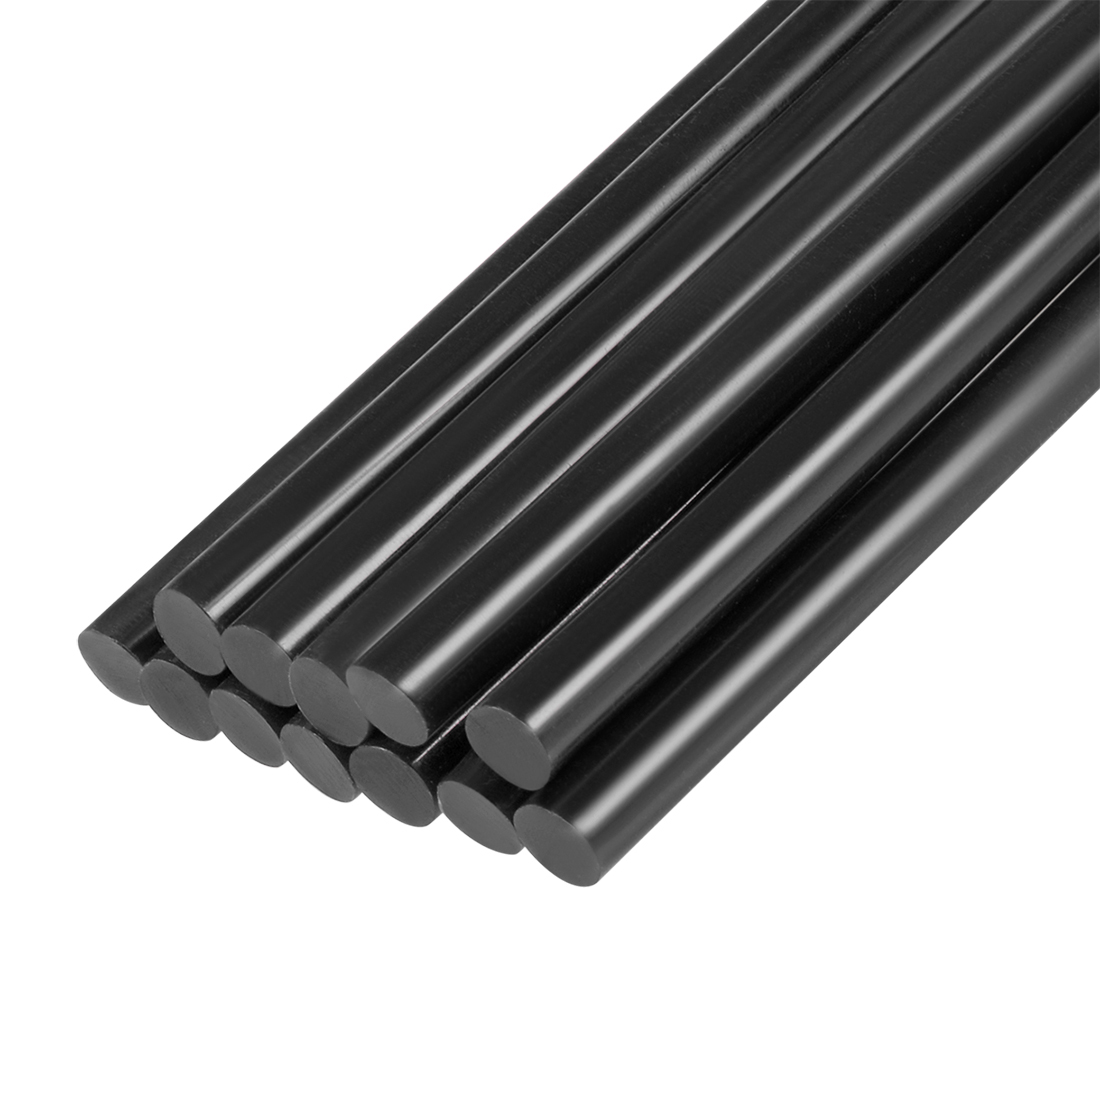 12 Pcs 11mm Diameter 270mm Long Crafting Model Black Plastic Hot Melt Glue Stick